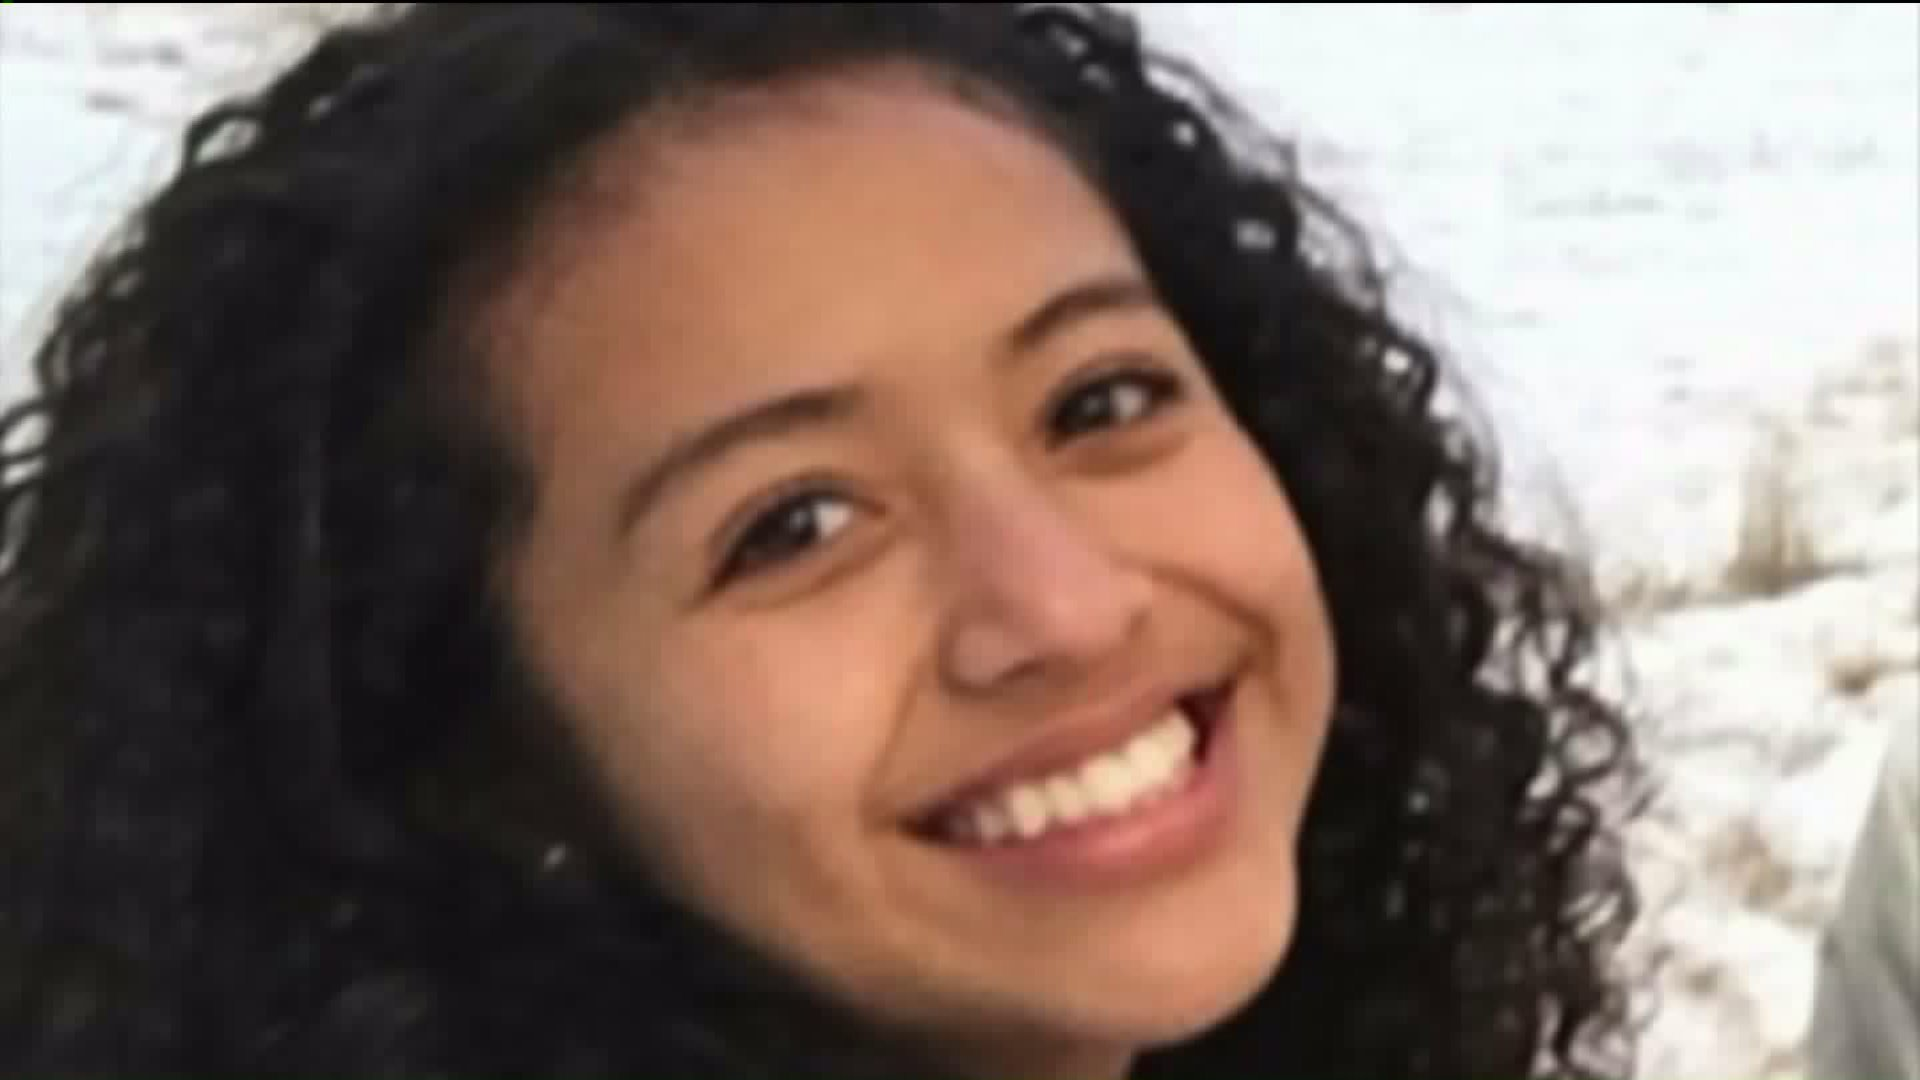 Danah Rojo Rivas, 16, is pictured in a photo posted to a GoFundMe page.